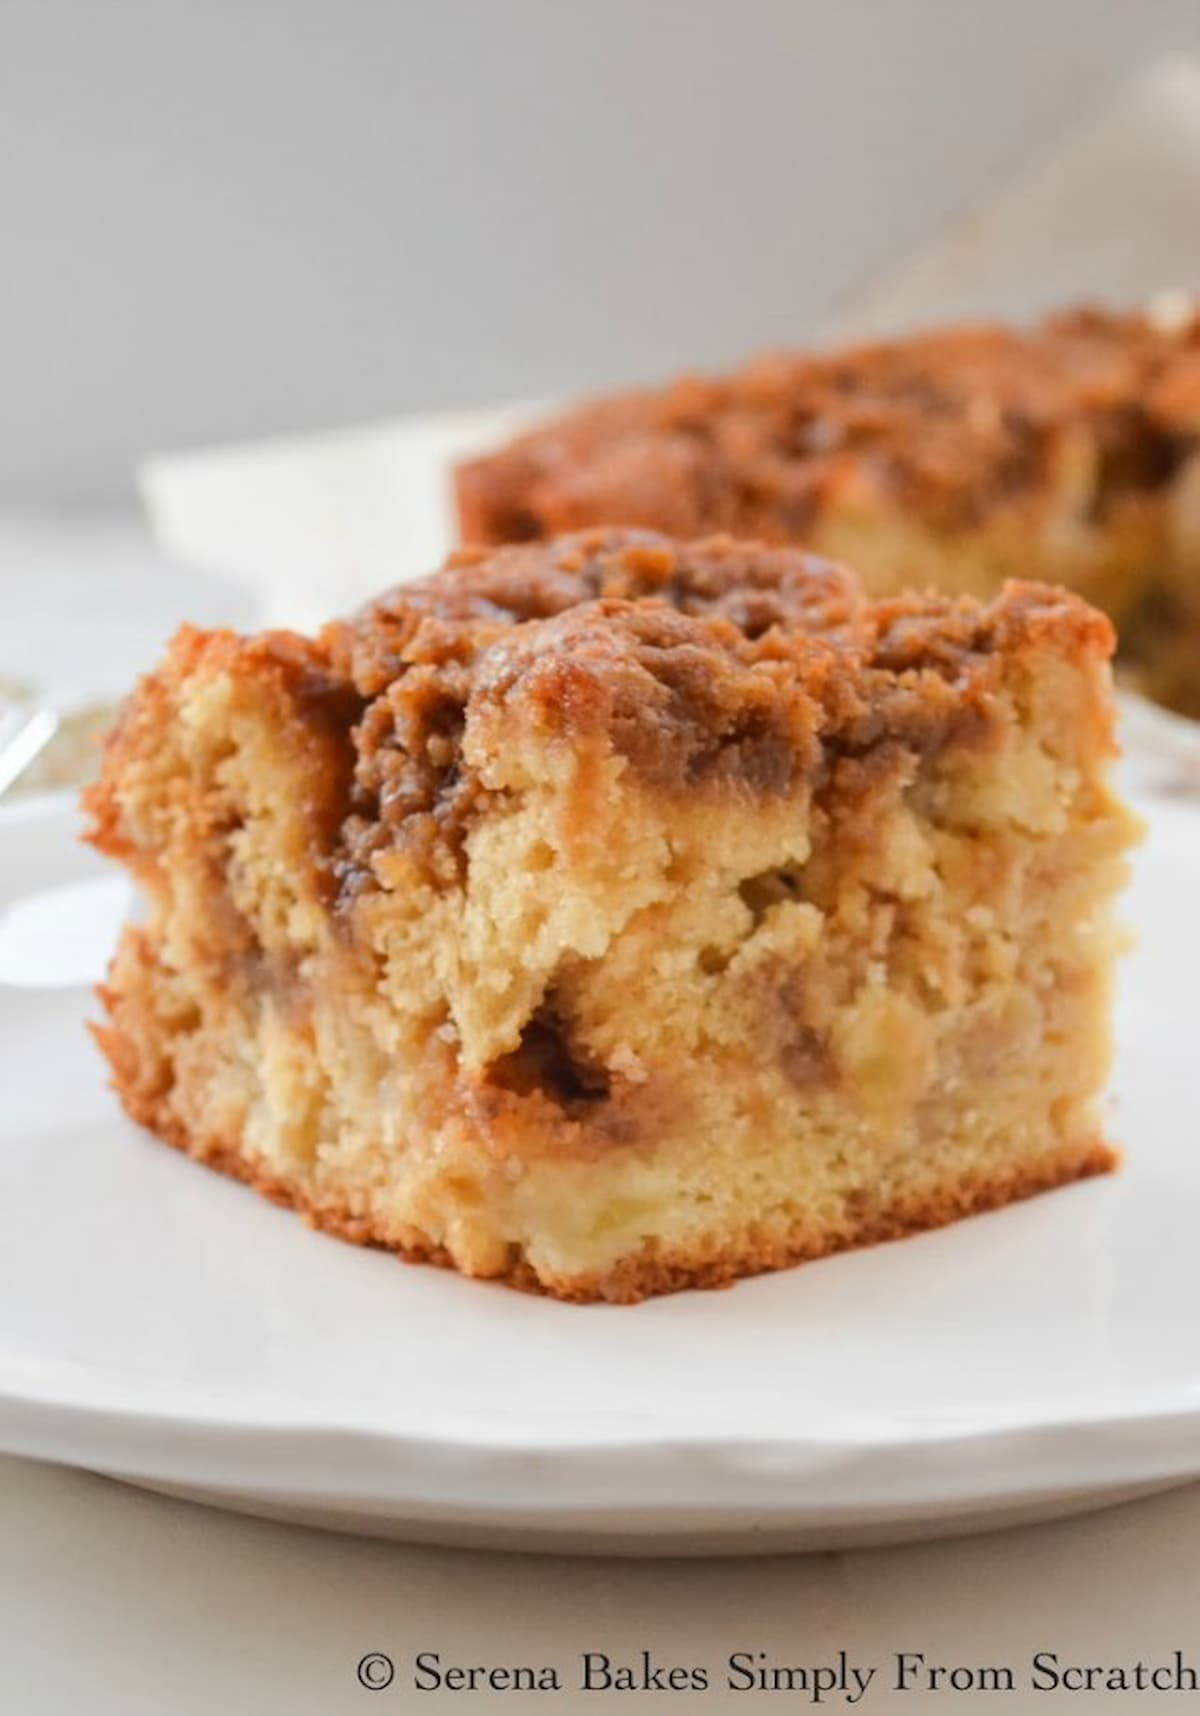 A slice of Apple Coffee Cake filled with Granny Smith Apples and a Brown Sugar Cinnamon Crumb and Swirl on a white plate.